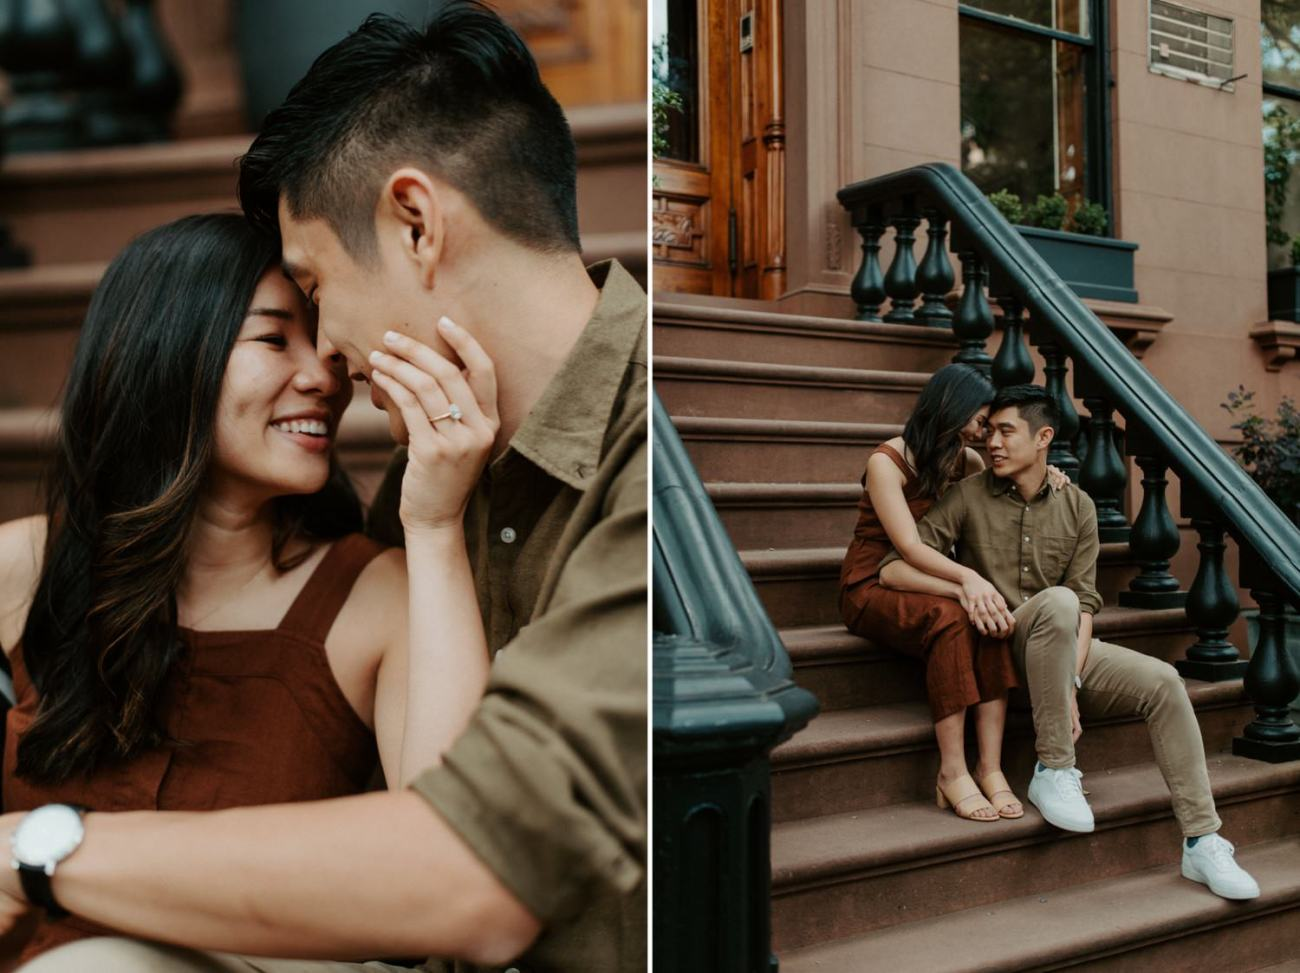 Fort Greene Brooklyn Engagement Session Brooklyn Wedding Photographer New York Wedding Photographer Anais Possamai Photography 007